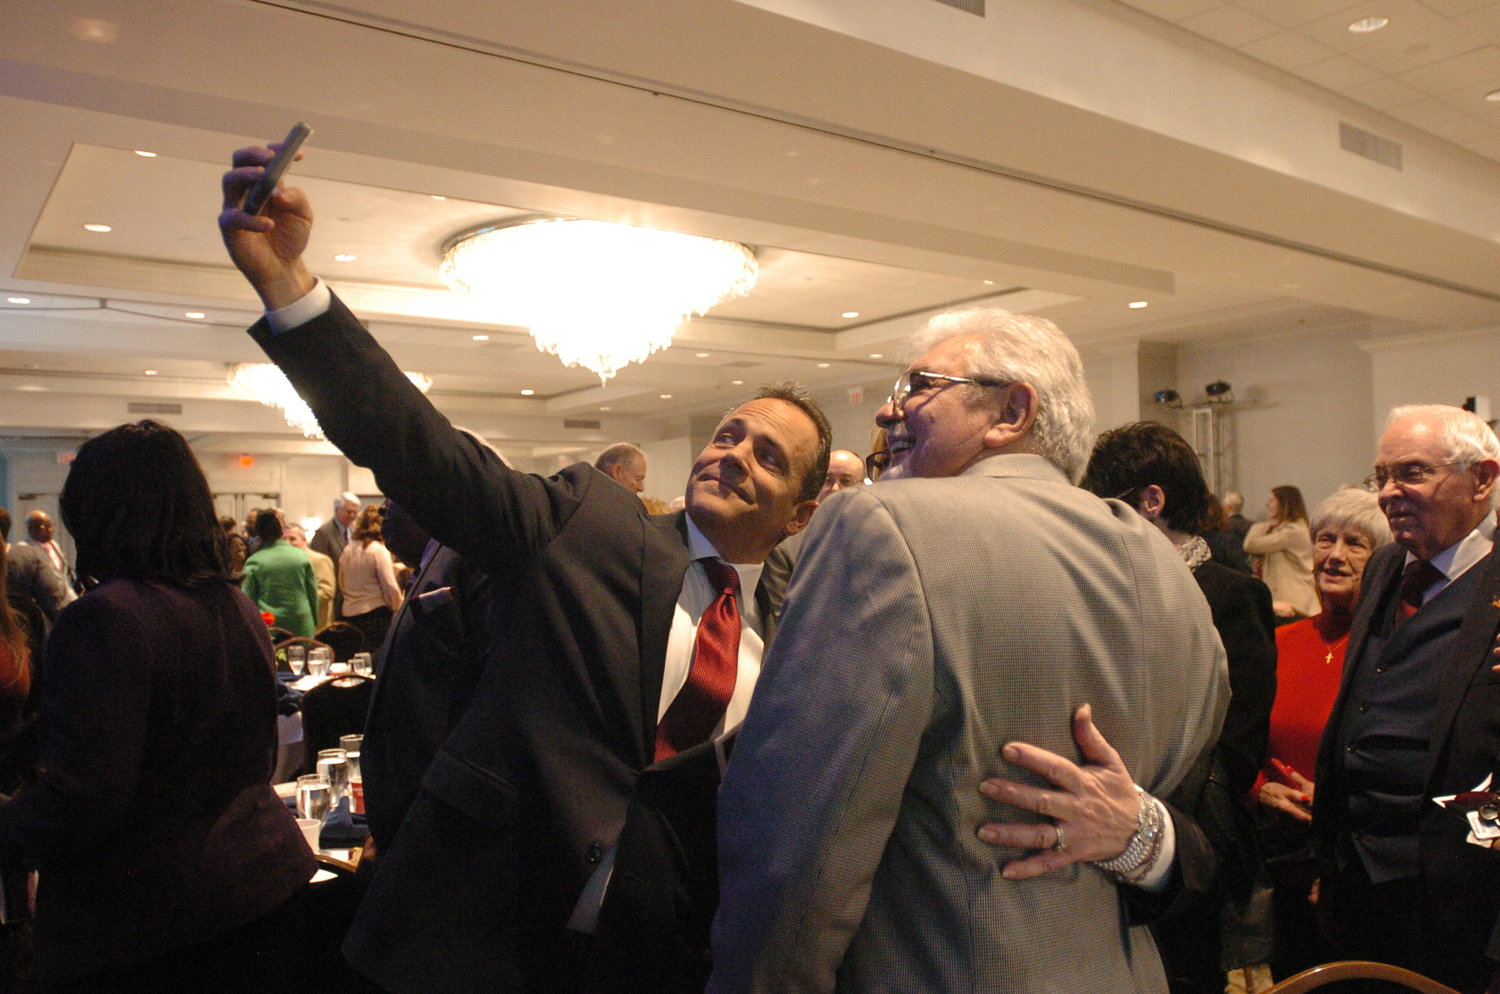 Gov. Matt Bevin takes a selfie at the Governor's Prayer Breakfast on Monday morning. (Kentucky Today/Chip Hutcheson)